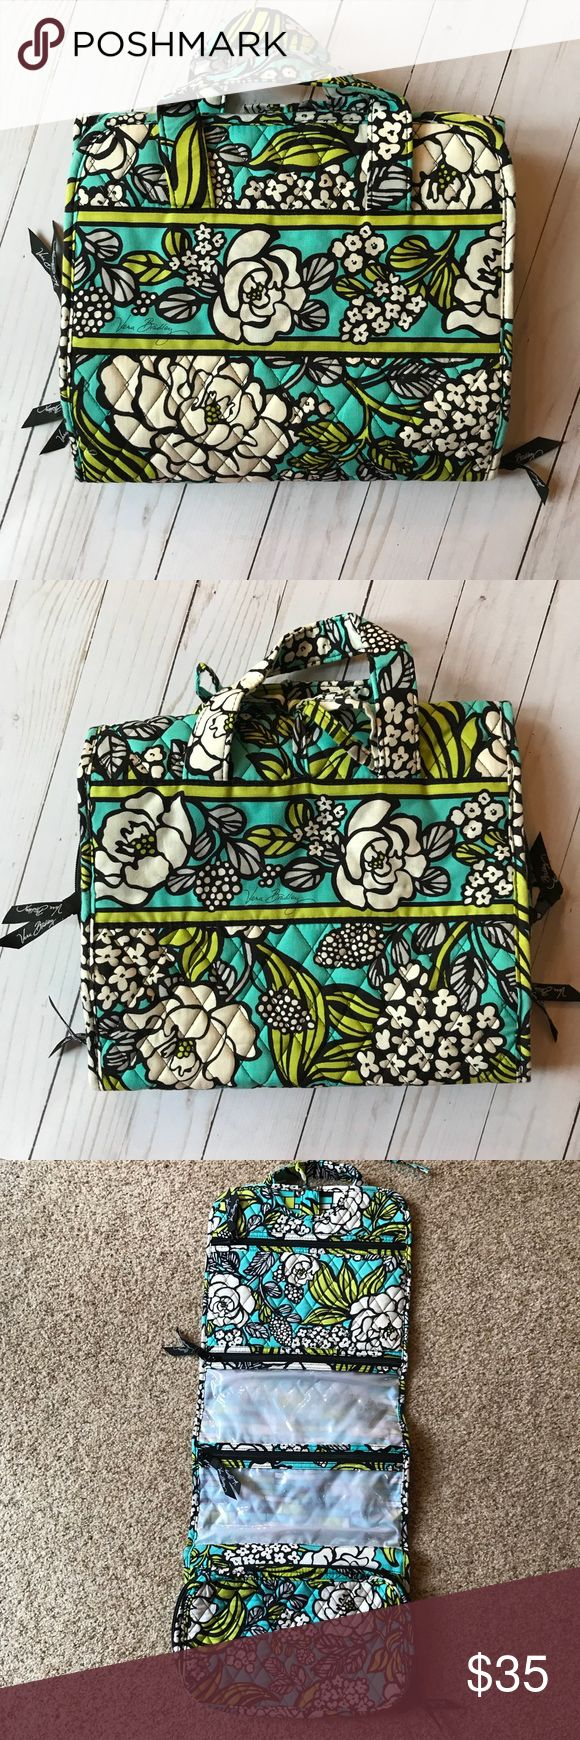 Vera Bradley Hanging Makeup Organizer Barely used. I got it as a graduation gift but I never wear makeup so I didn't have much of a use for it. No stains tears or signs of wear. Perfect for organization! Vera Bradley Bags Cosmetic Bags & Cases